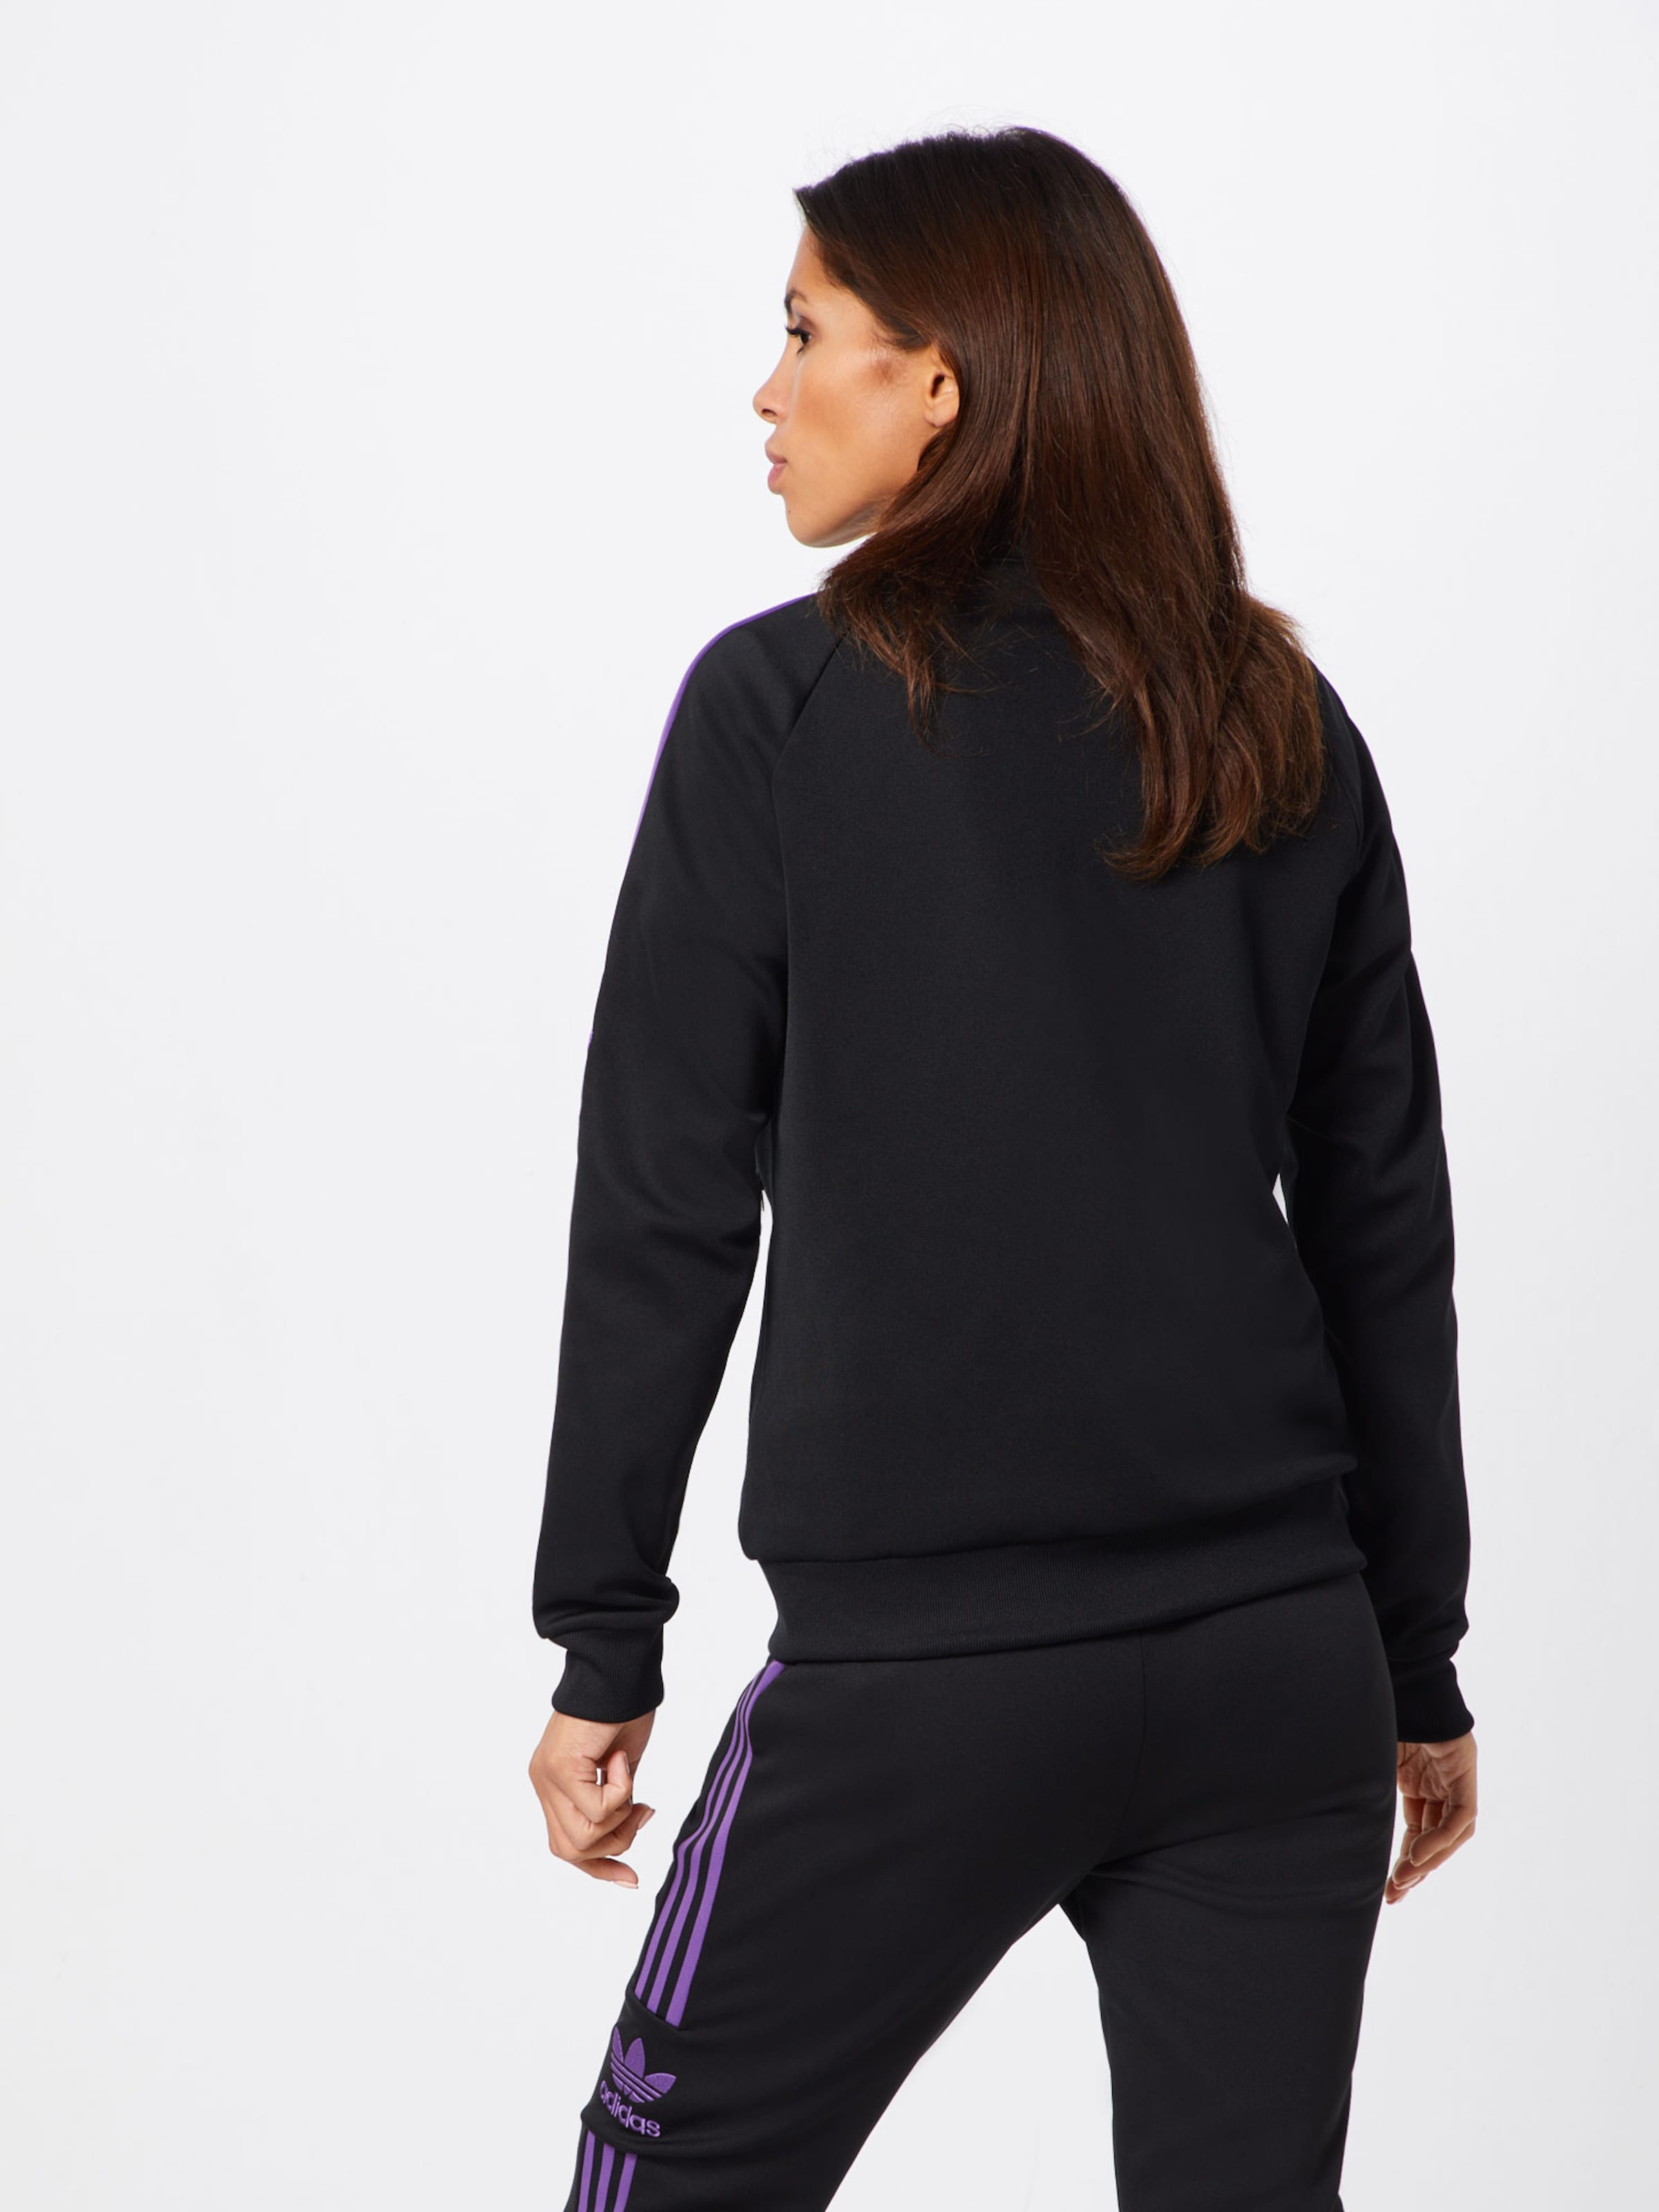 'sst Survêtement En Track Adidas De Veste VioletNoir Originals Top' 5q34ARjL